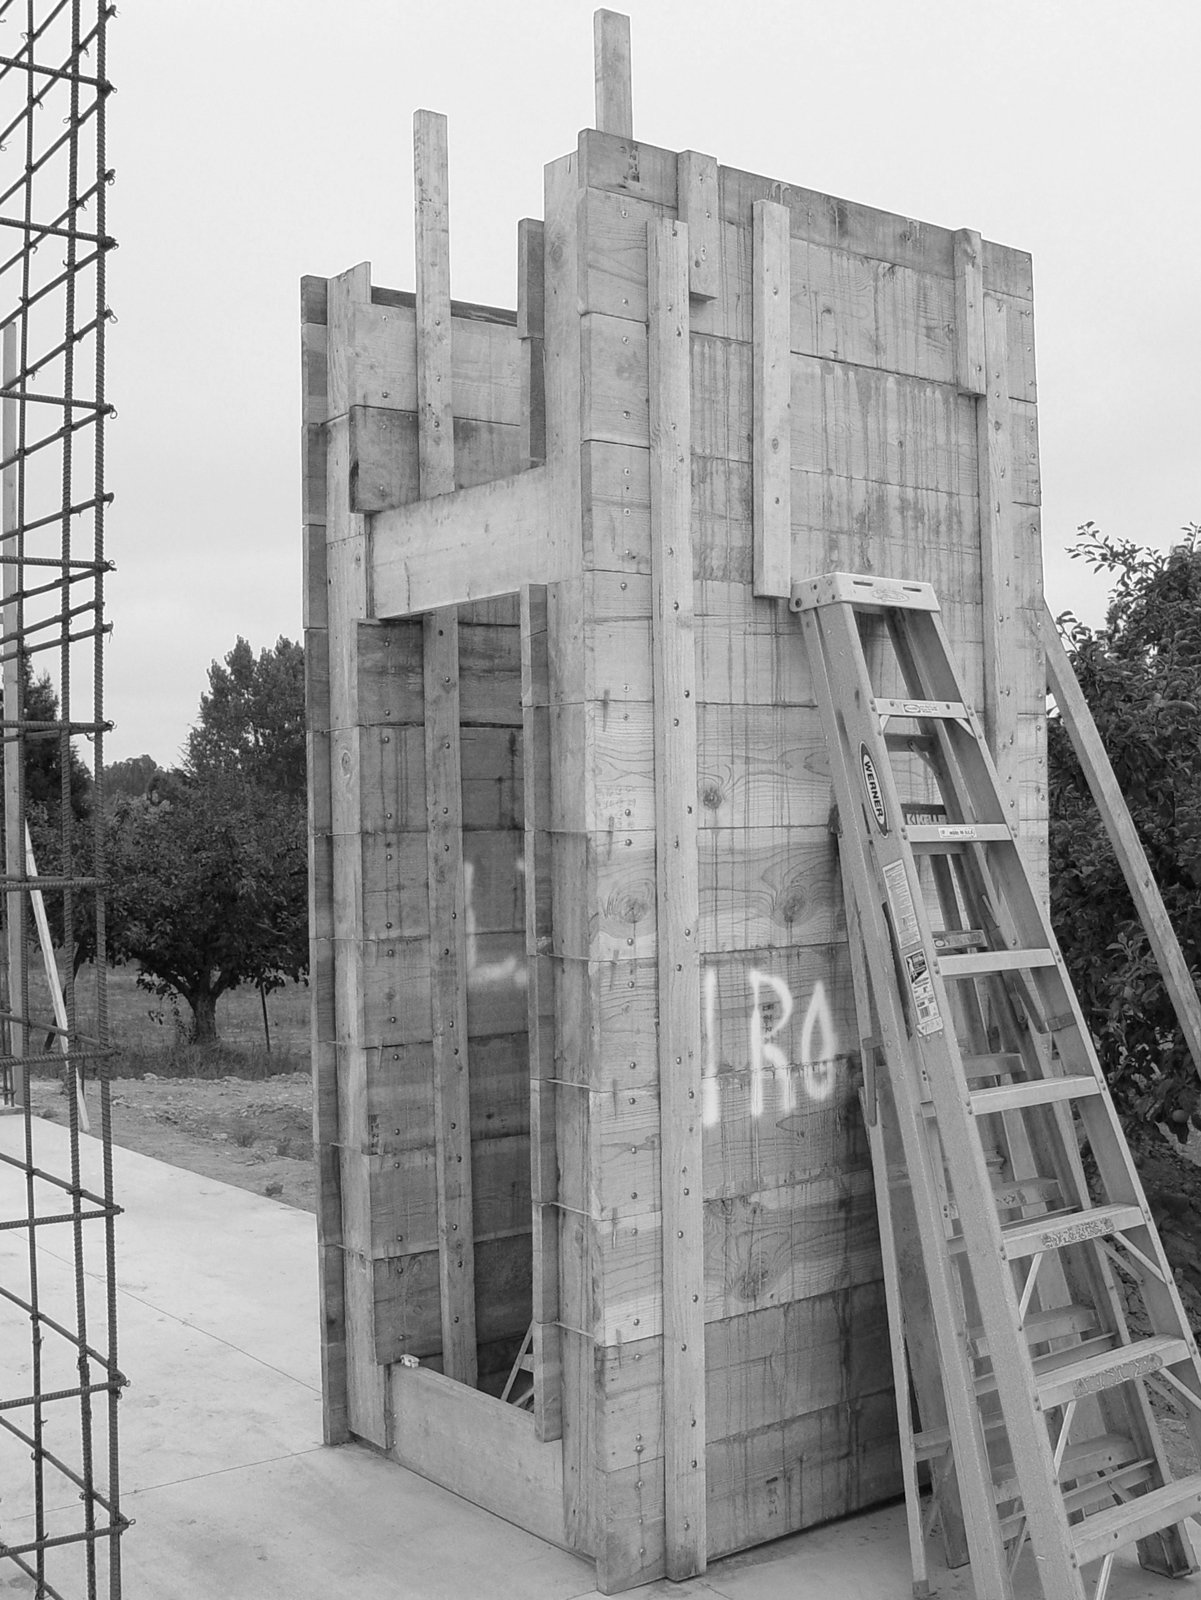 The Andersons designed a system of four-by-four-foot concrete modules, created from a reusable formwork of 2-by-12-foot boards that could be easily moved around the site. By using the units repeatedly, the architects saved on cost and materials as well as scaling the work to be manageable with one concrete truck and a two-person crew. The resulting facades are textured from the rough wooden planks.  Photo 7 of 18 in A Sonoma Prefab That Celebrates a Family's Passion for Cooking